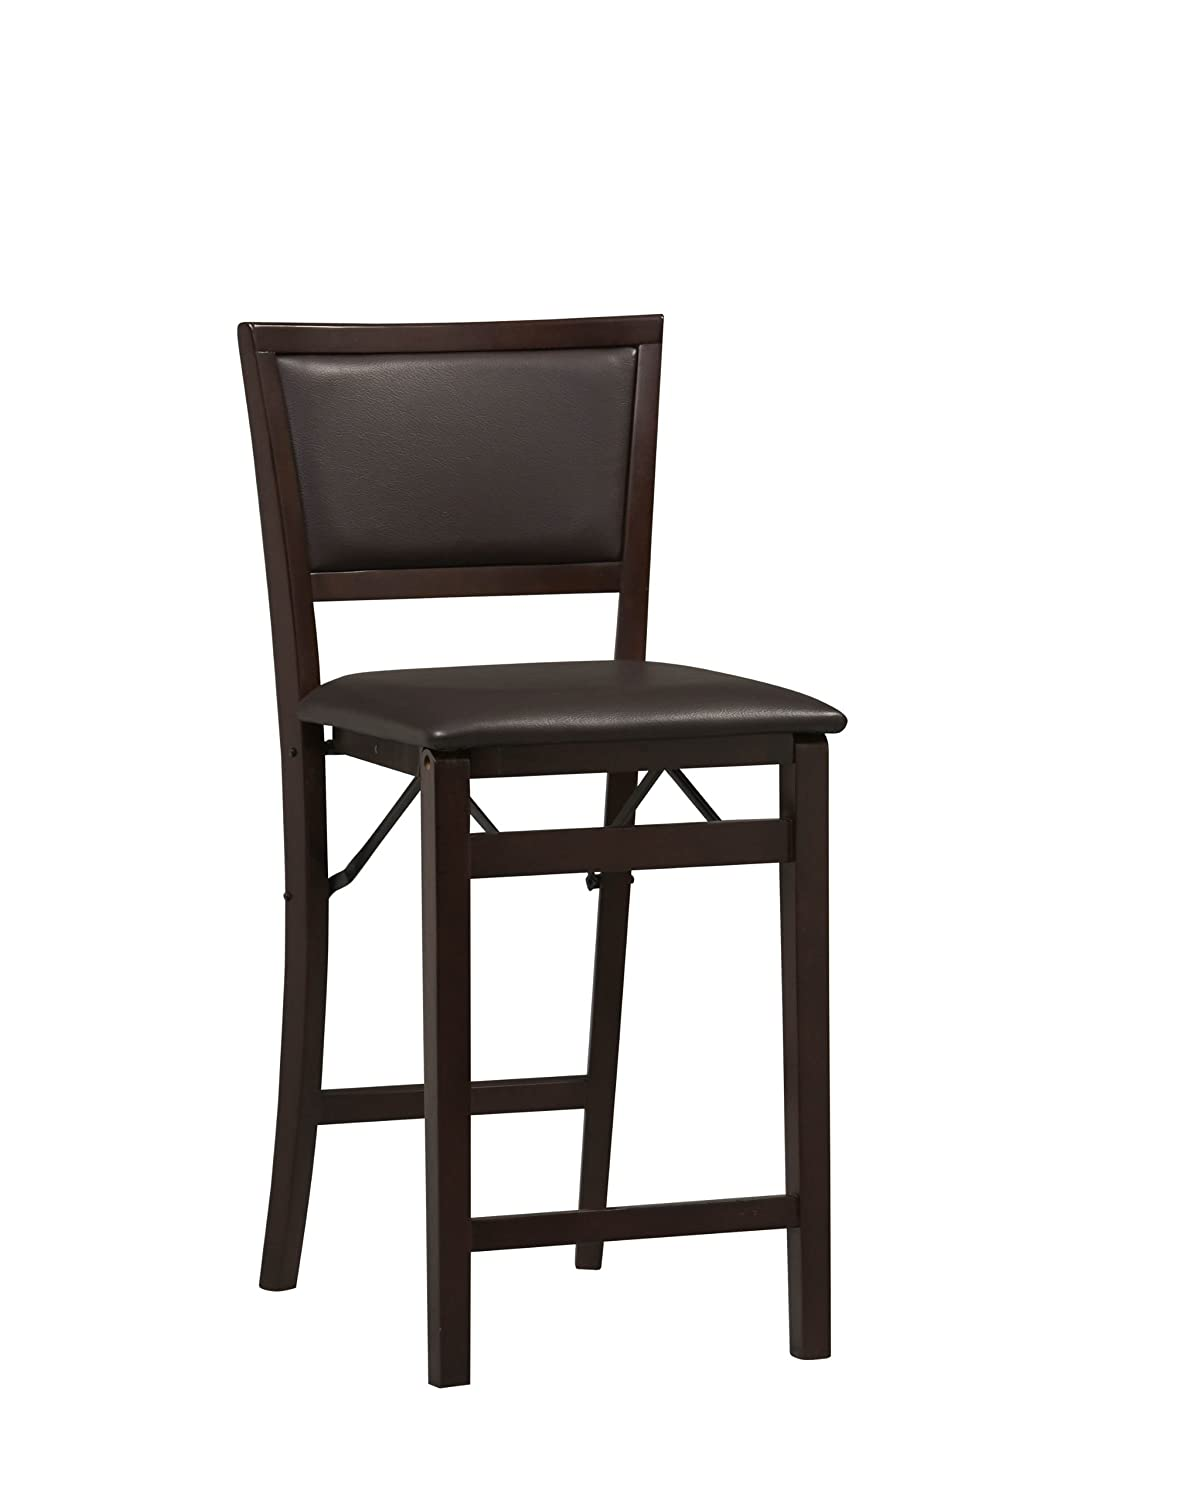 Amazoncom Linon Home Decor Keira Pad Back Folding Counter Stool - Collapsible chairs